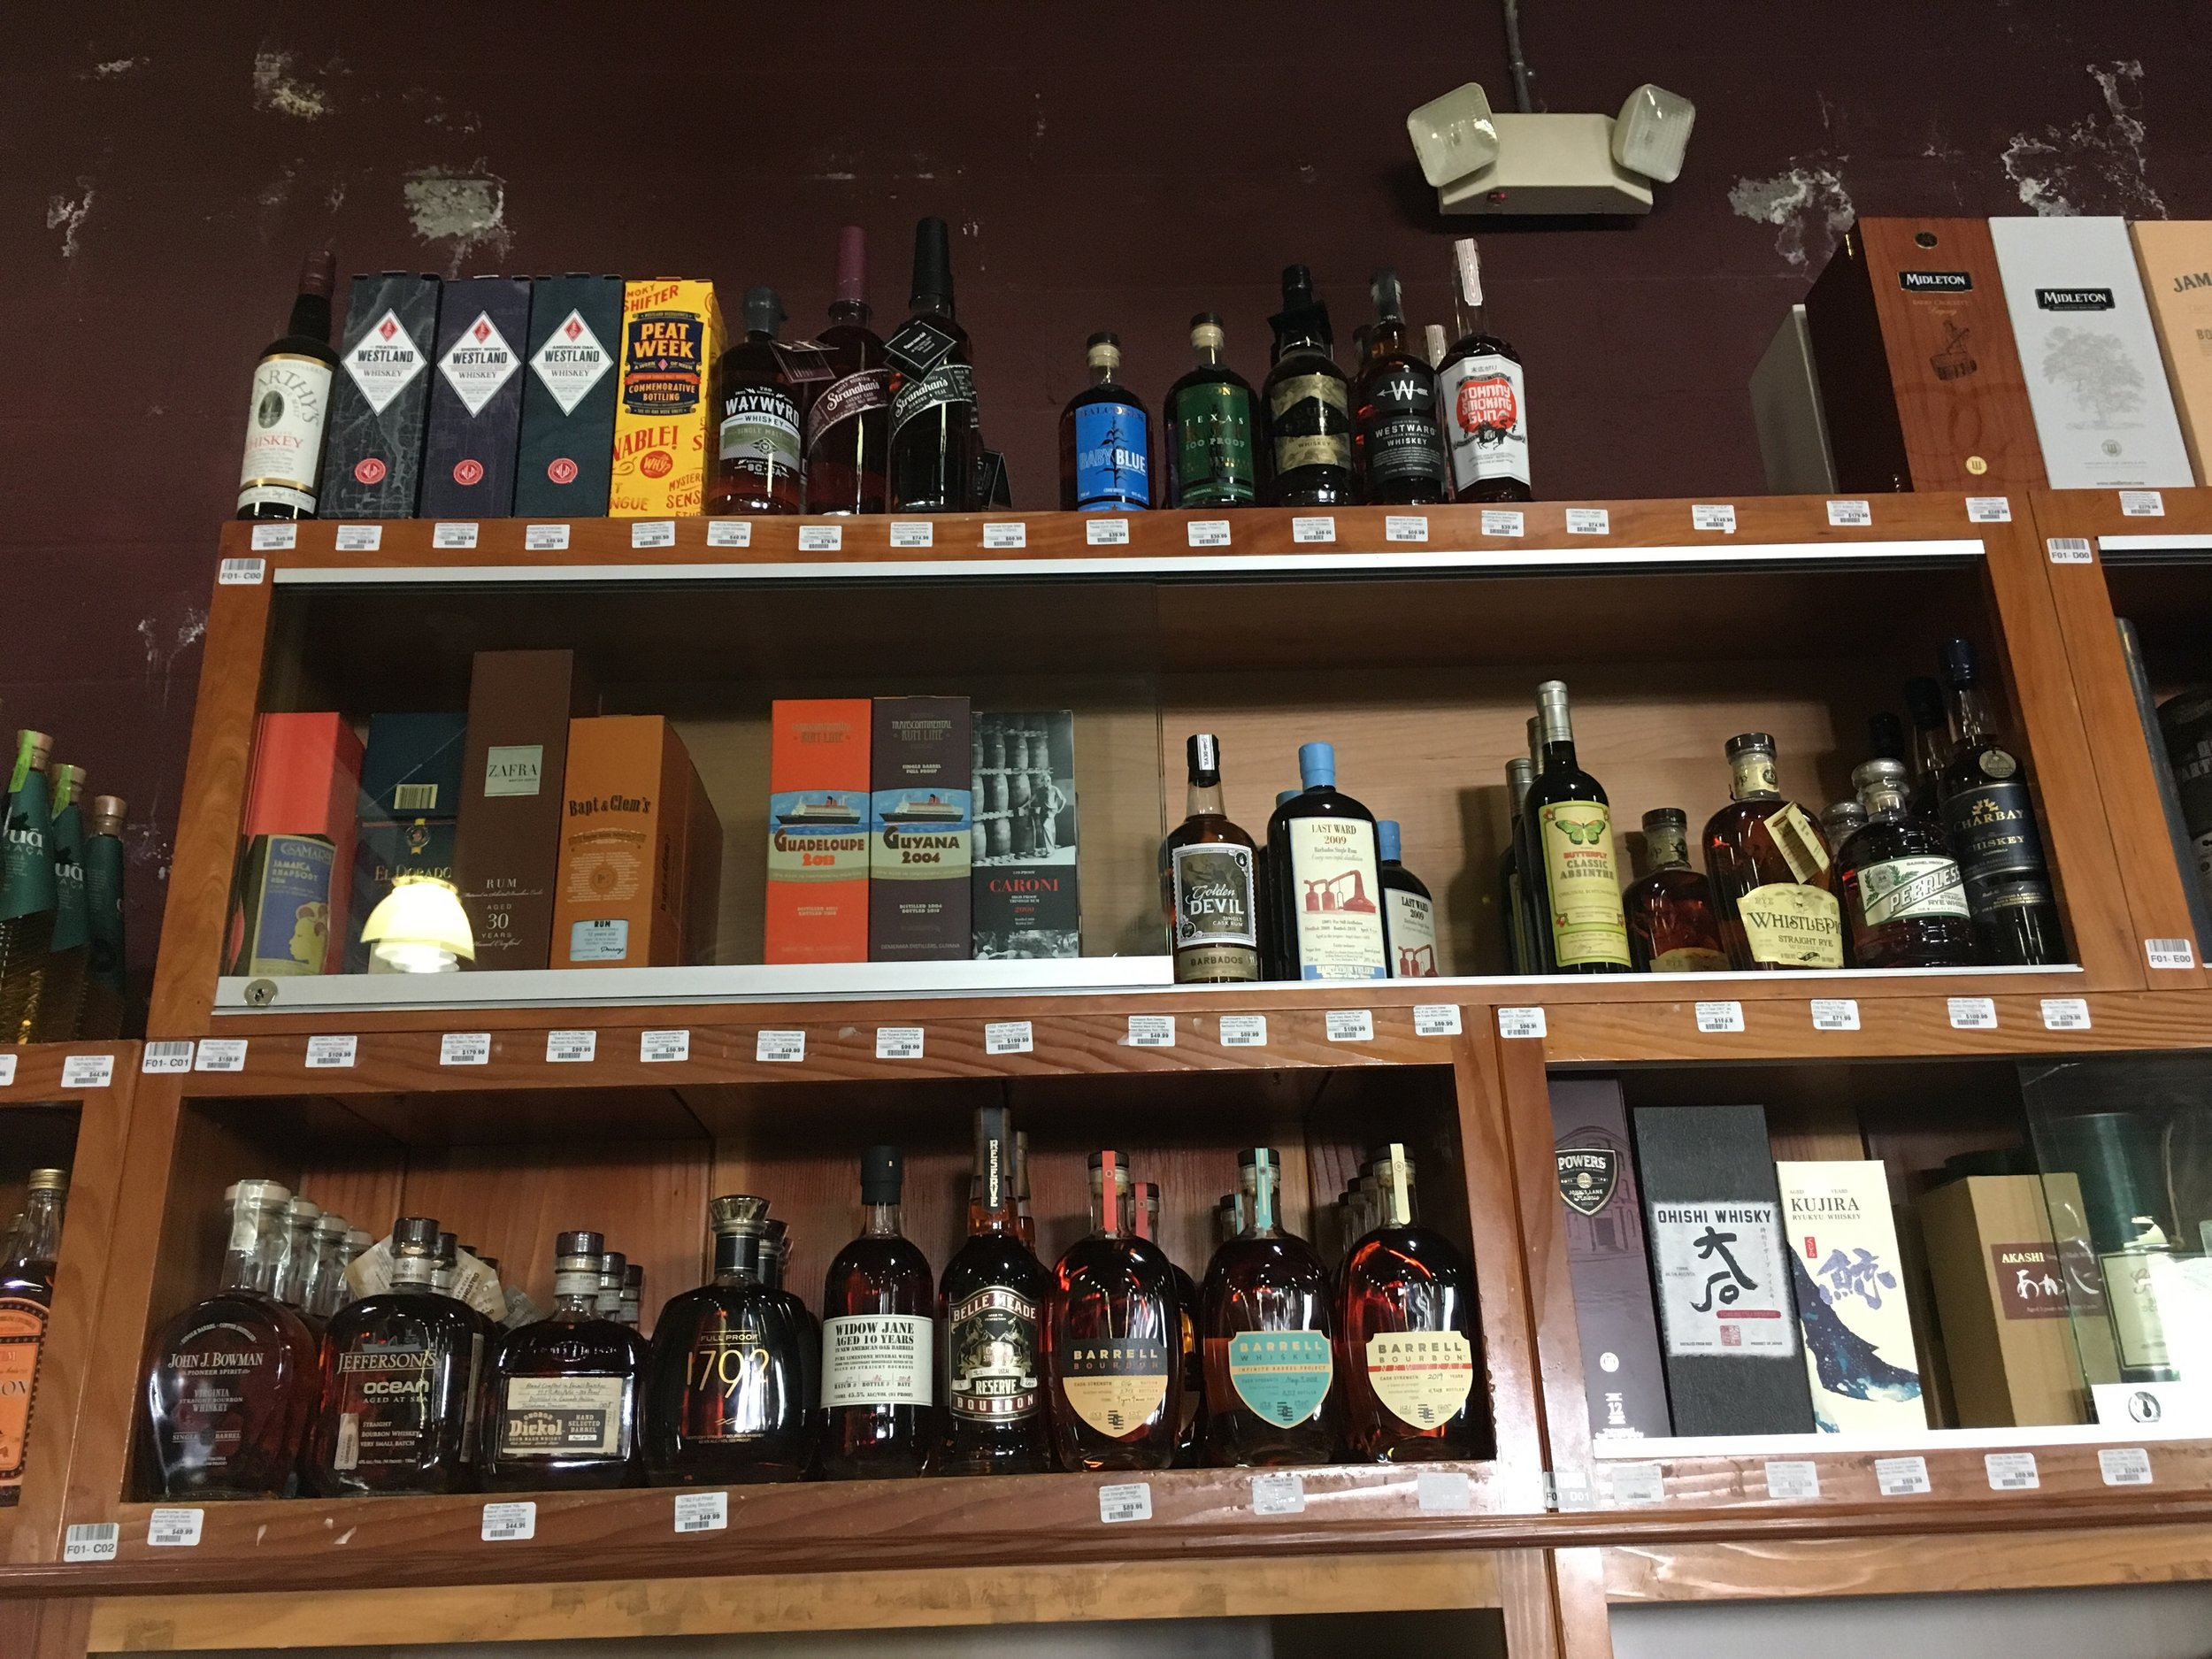 Craft whiskey deserves a place on the top shelf, and that's right where we found it at K&L Wine Merchants in Hollywood.